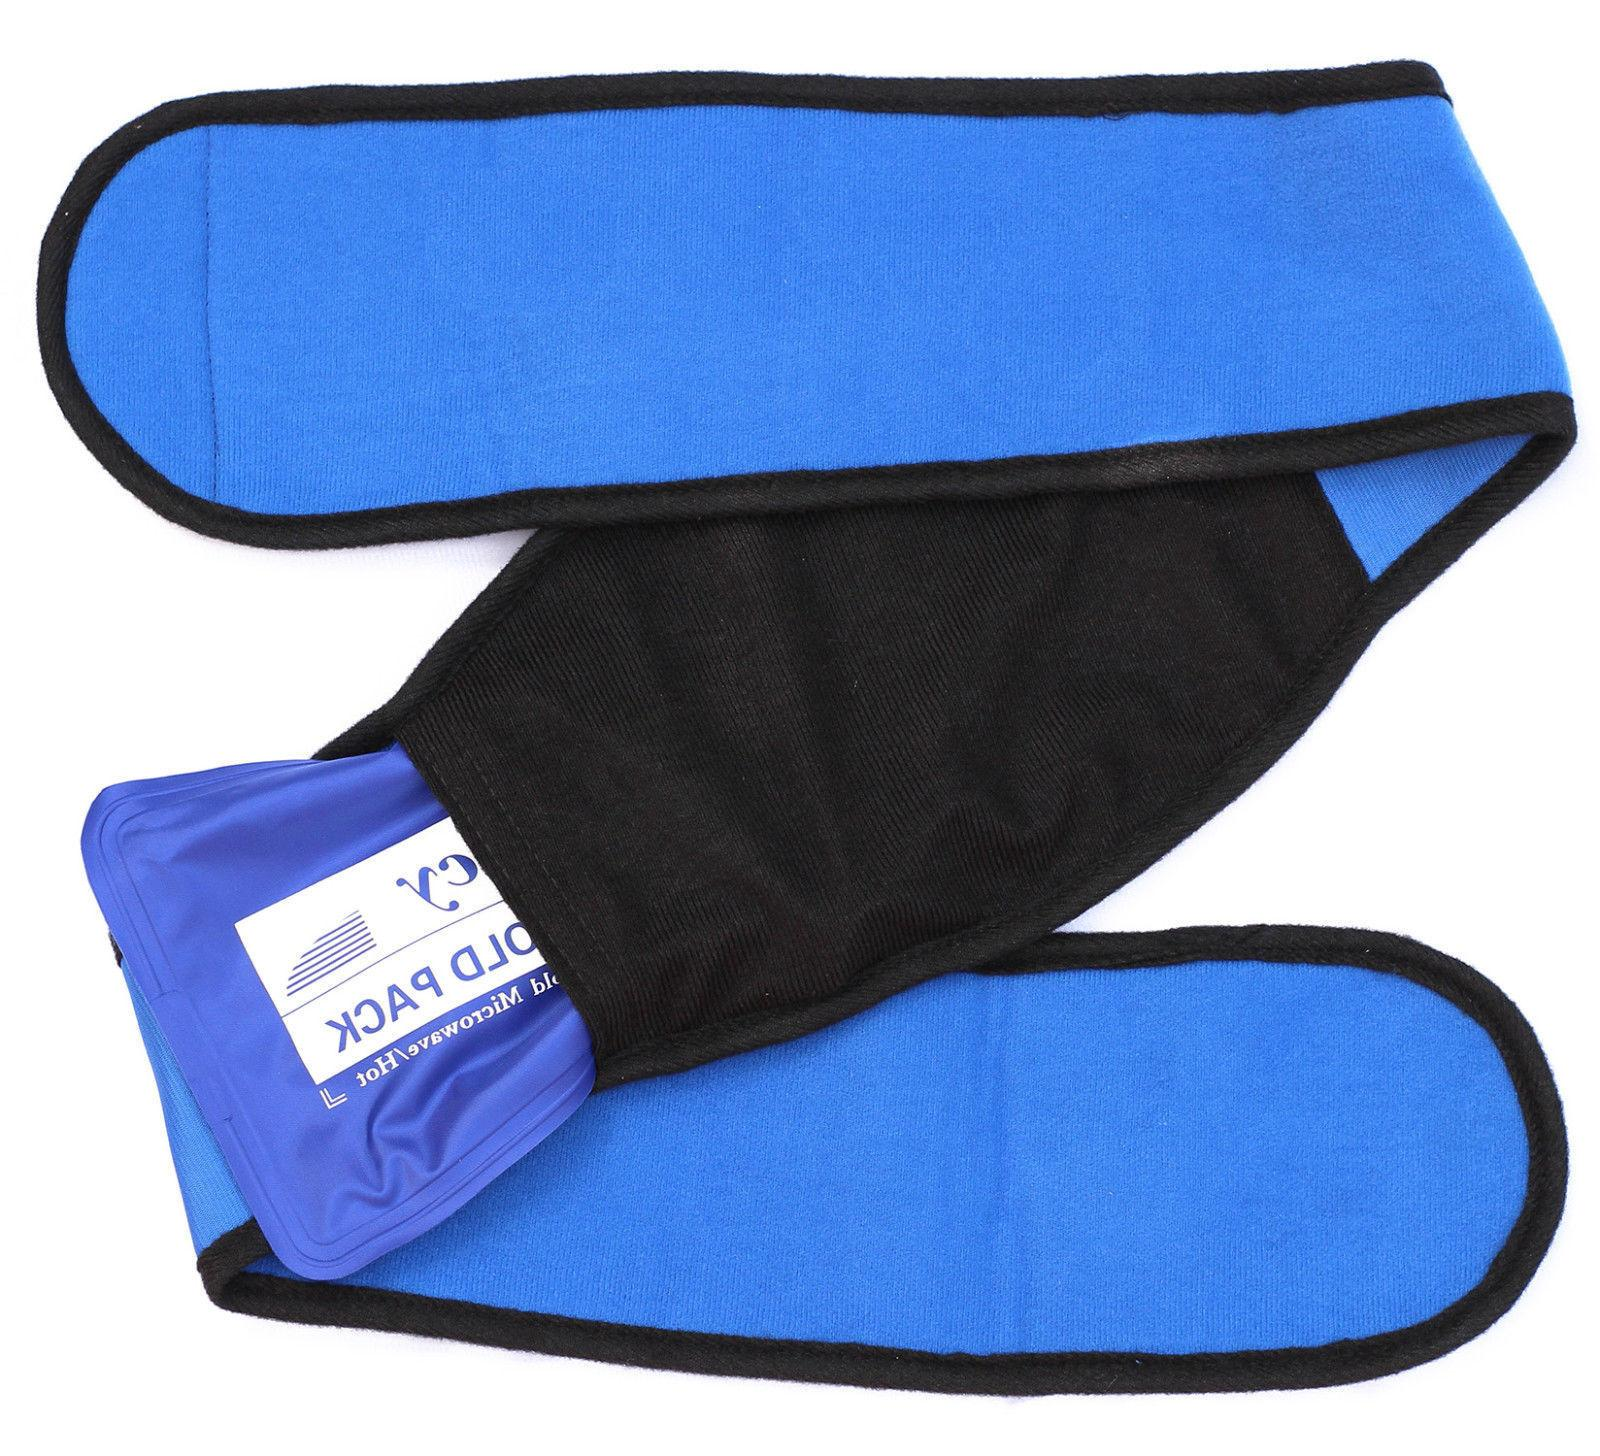 Reusable Ice Pack Gel Pack for Hot & Cold Therapy Heat Pad o